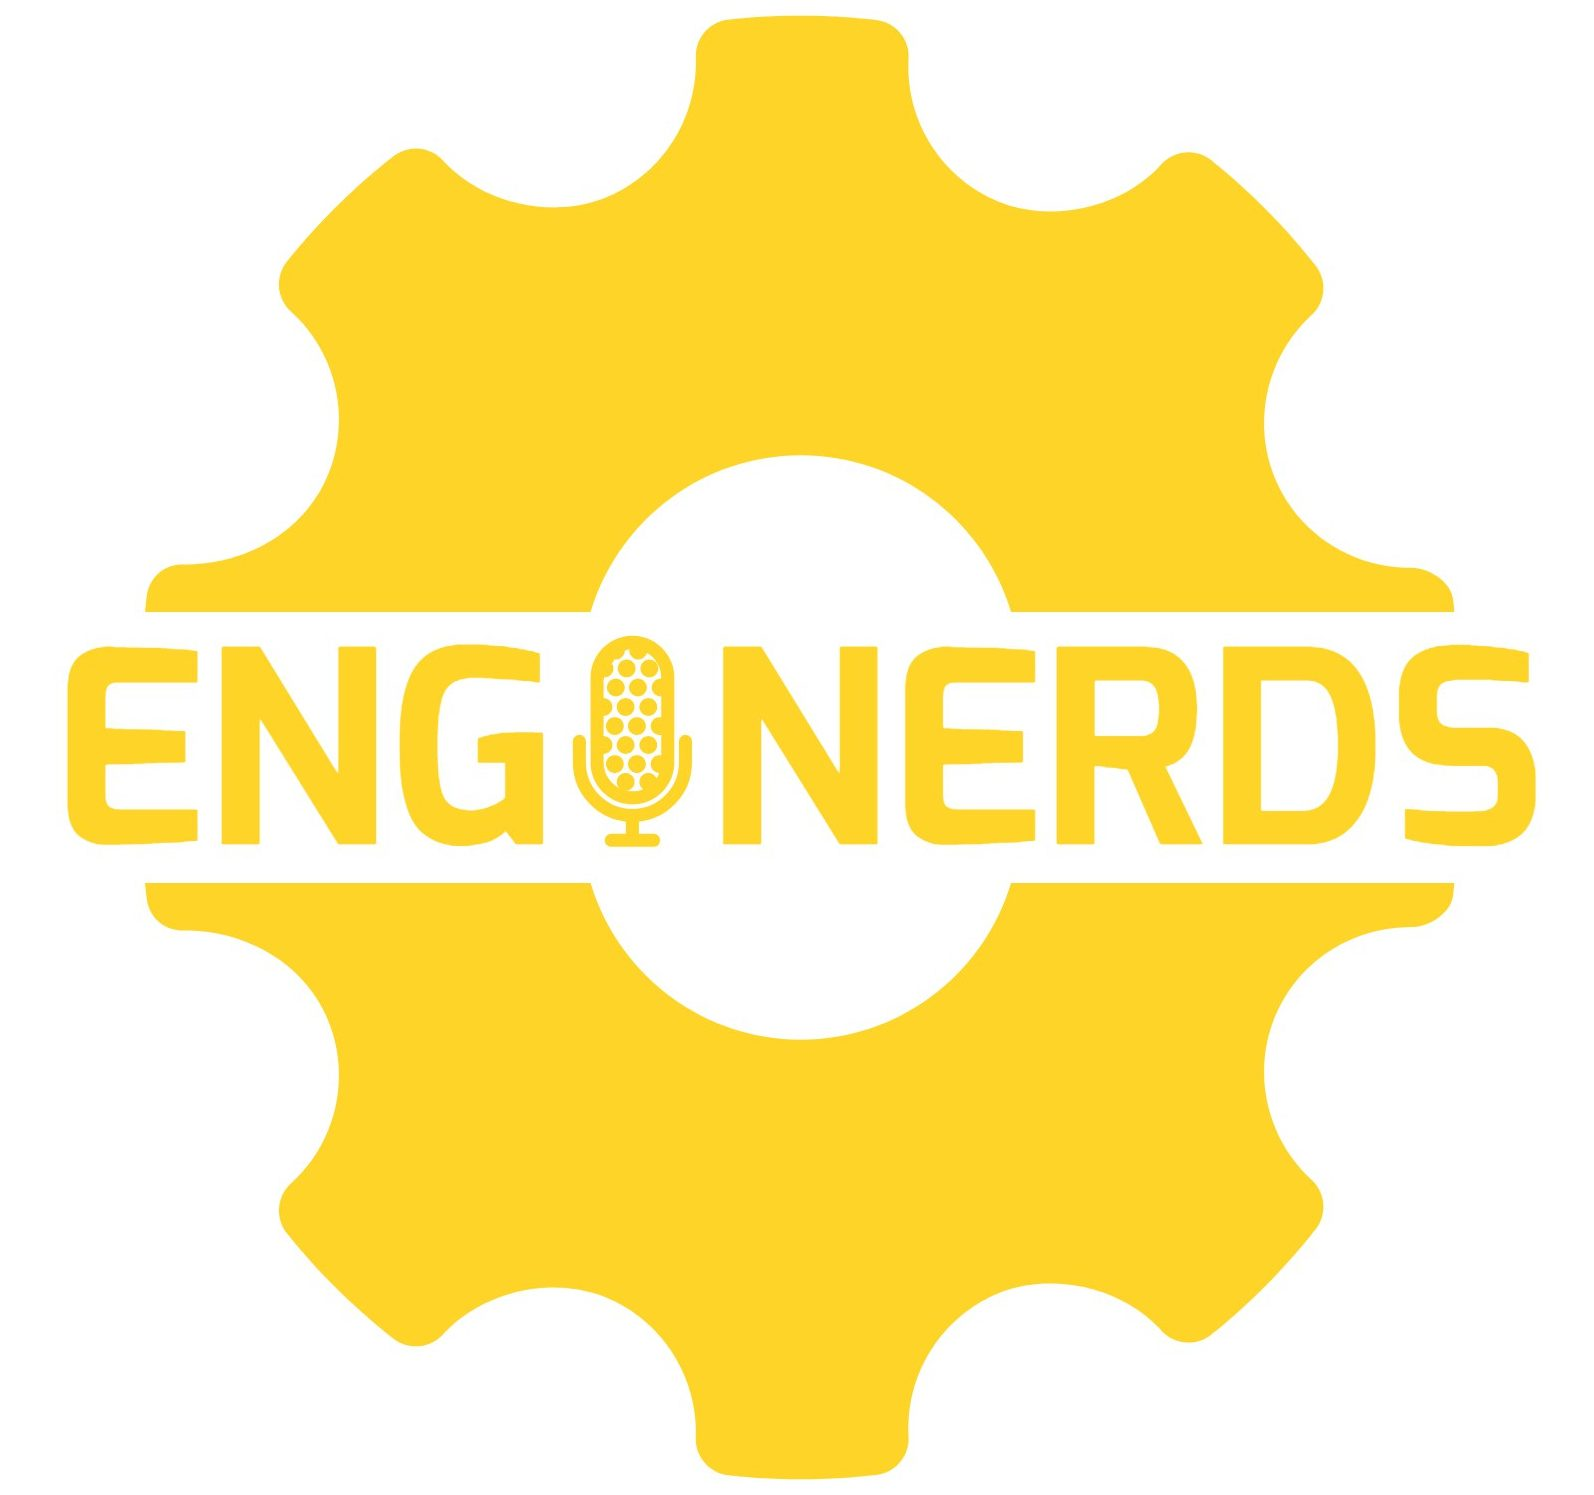 enginerds